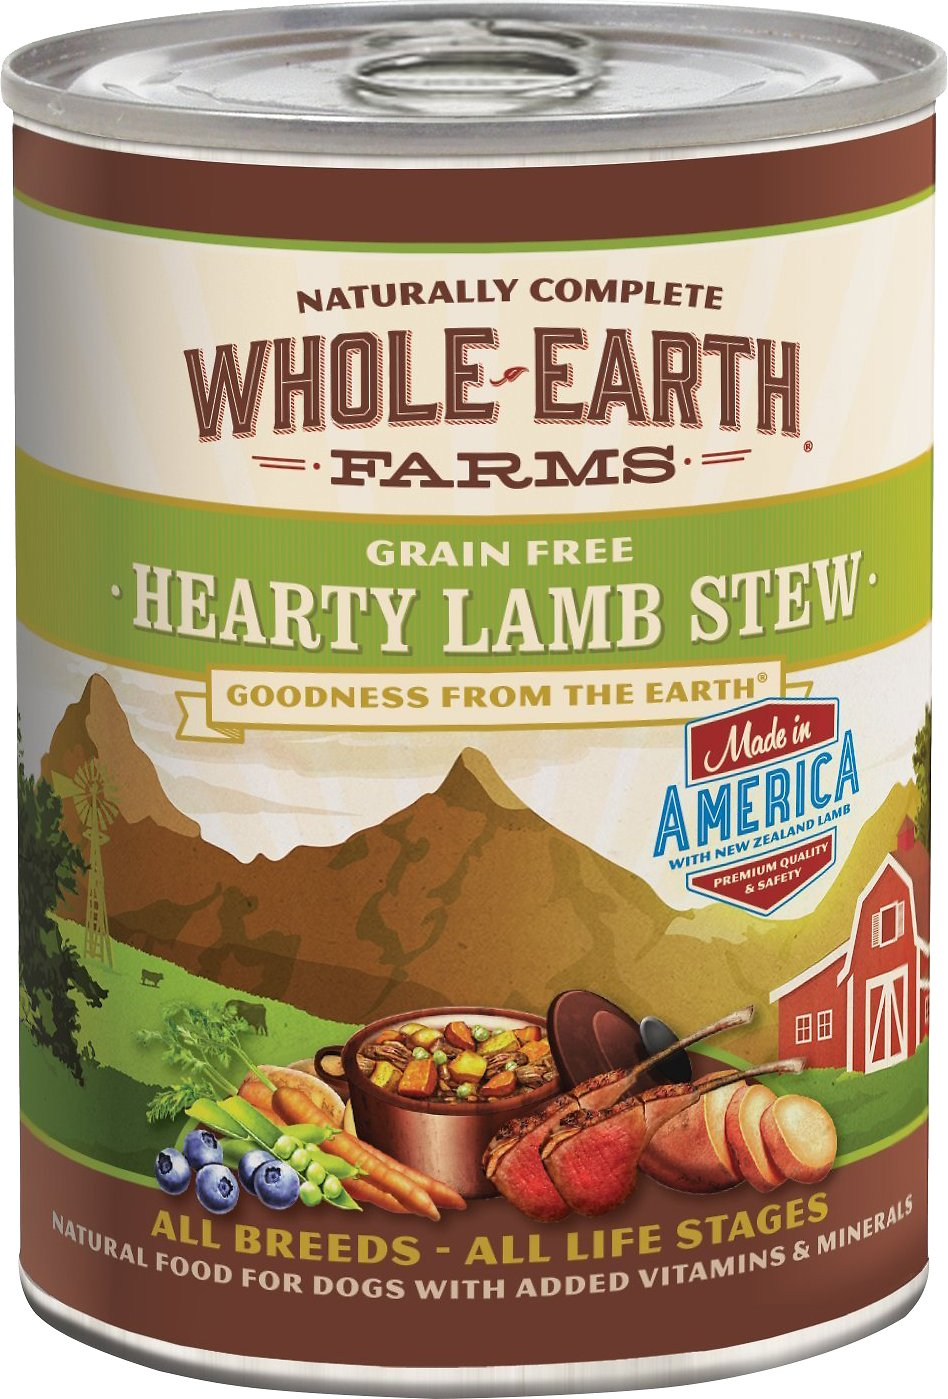 Whole Earth Farms Grain-Free Hearty Lamb Stew Canned Dog Food, 12.7-oz